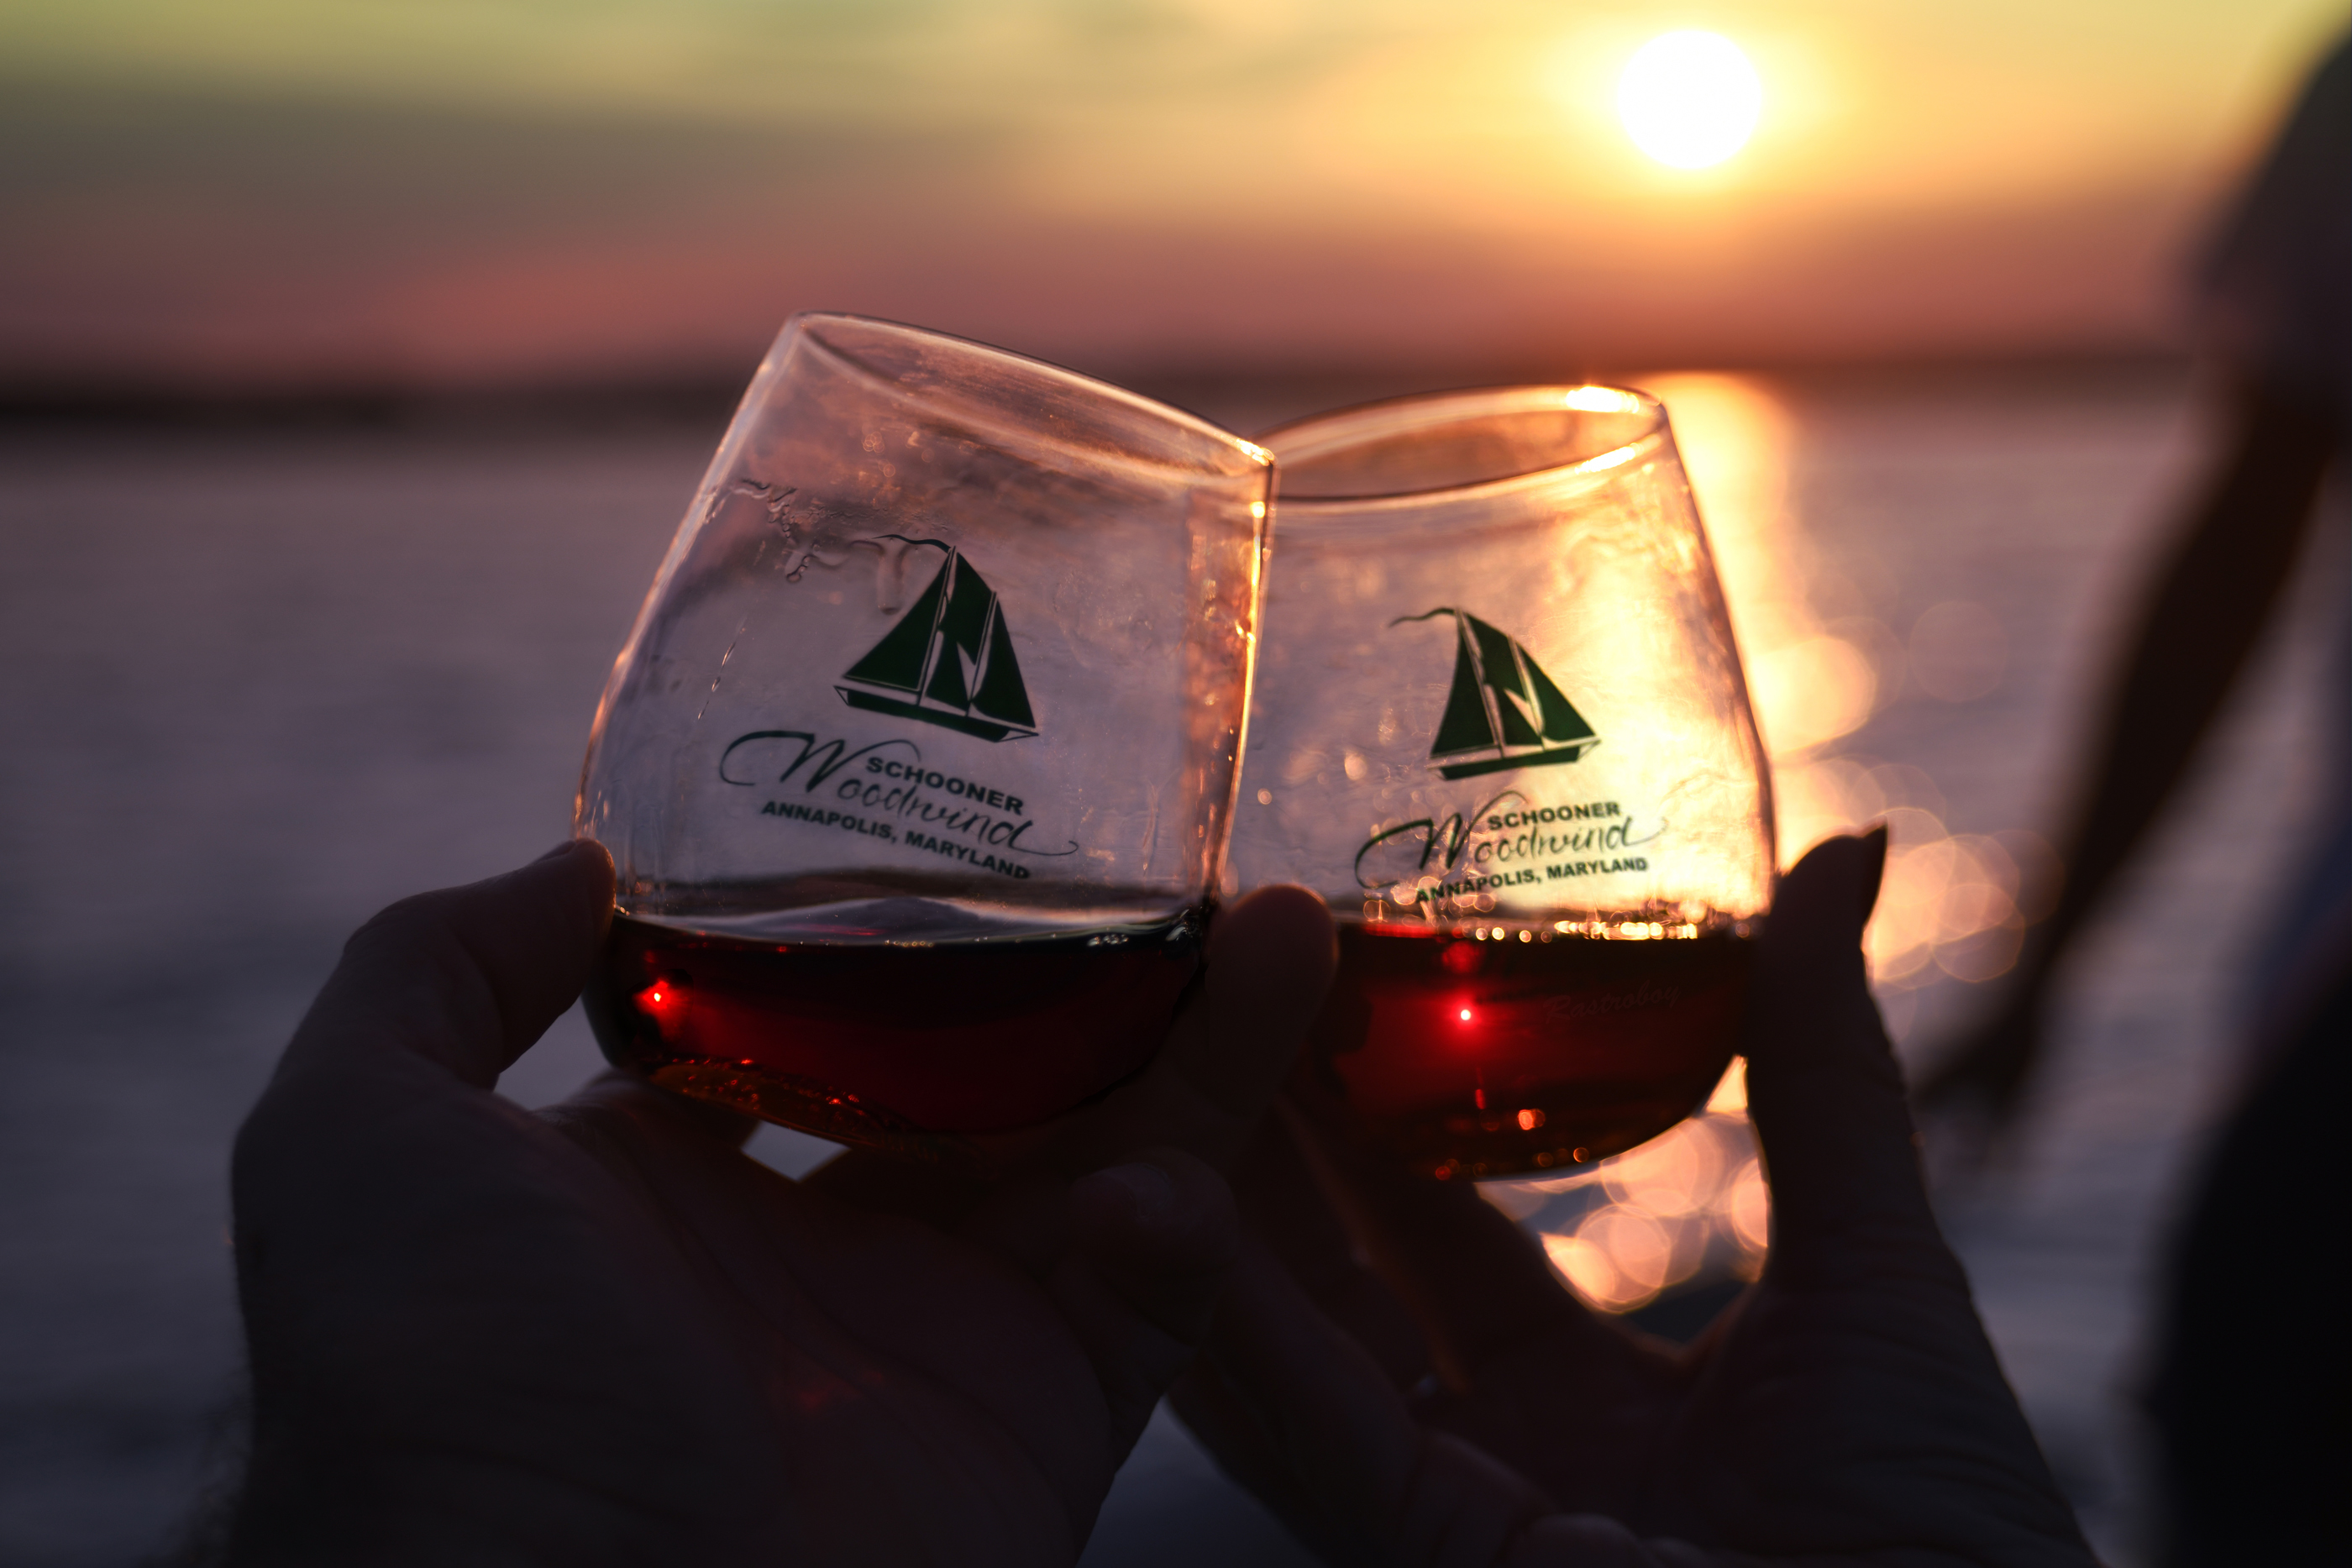 Two glasses of red wine at sunset